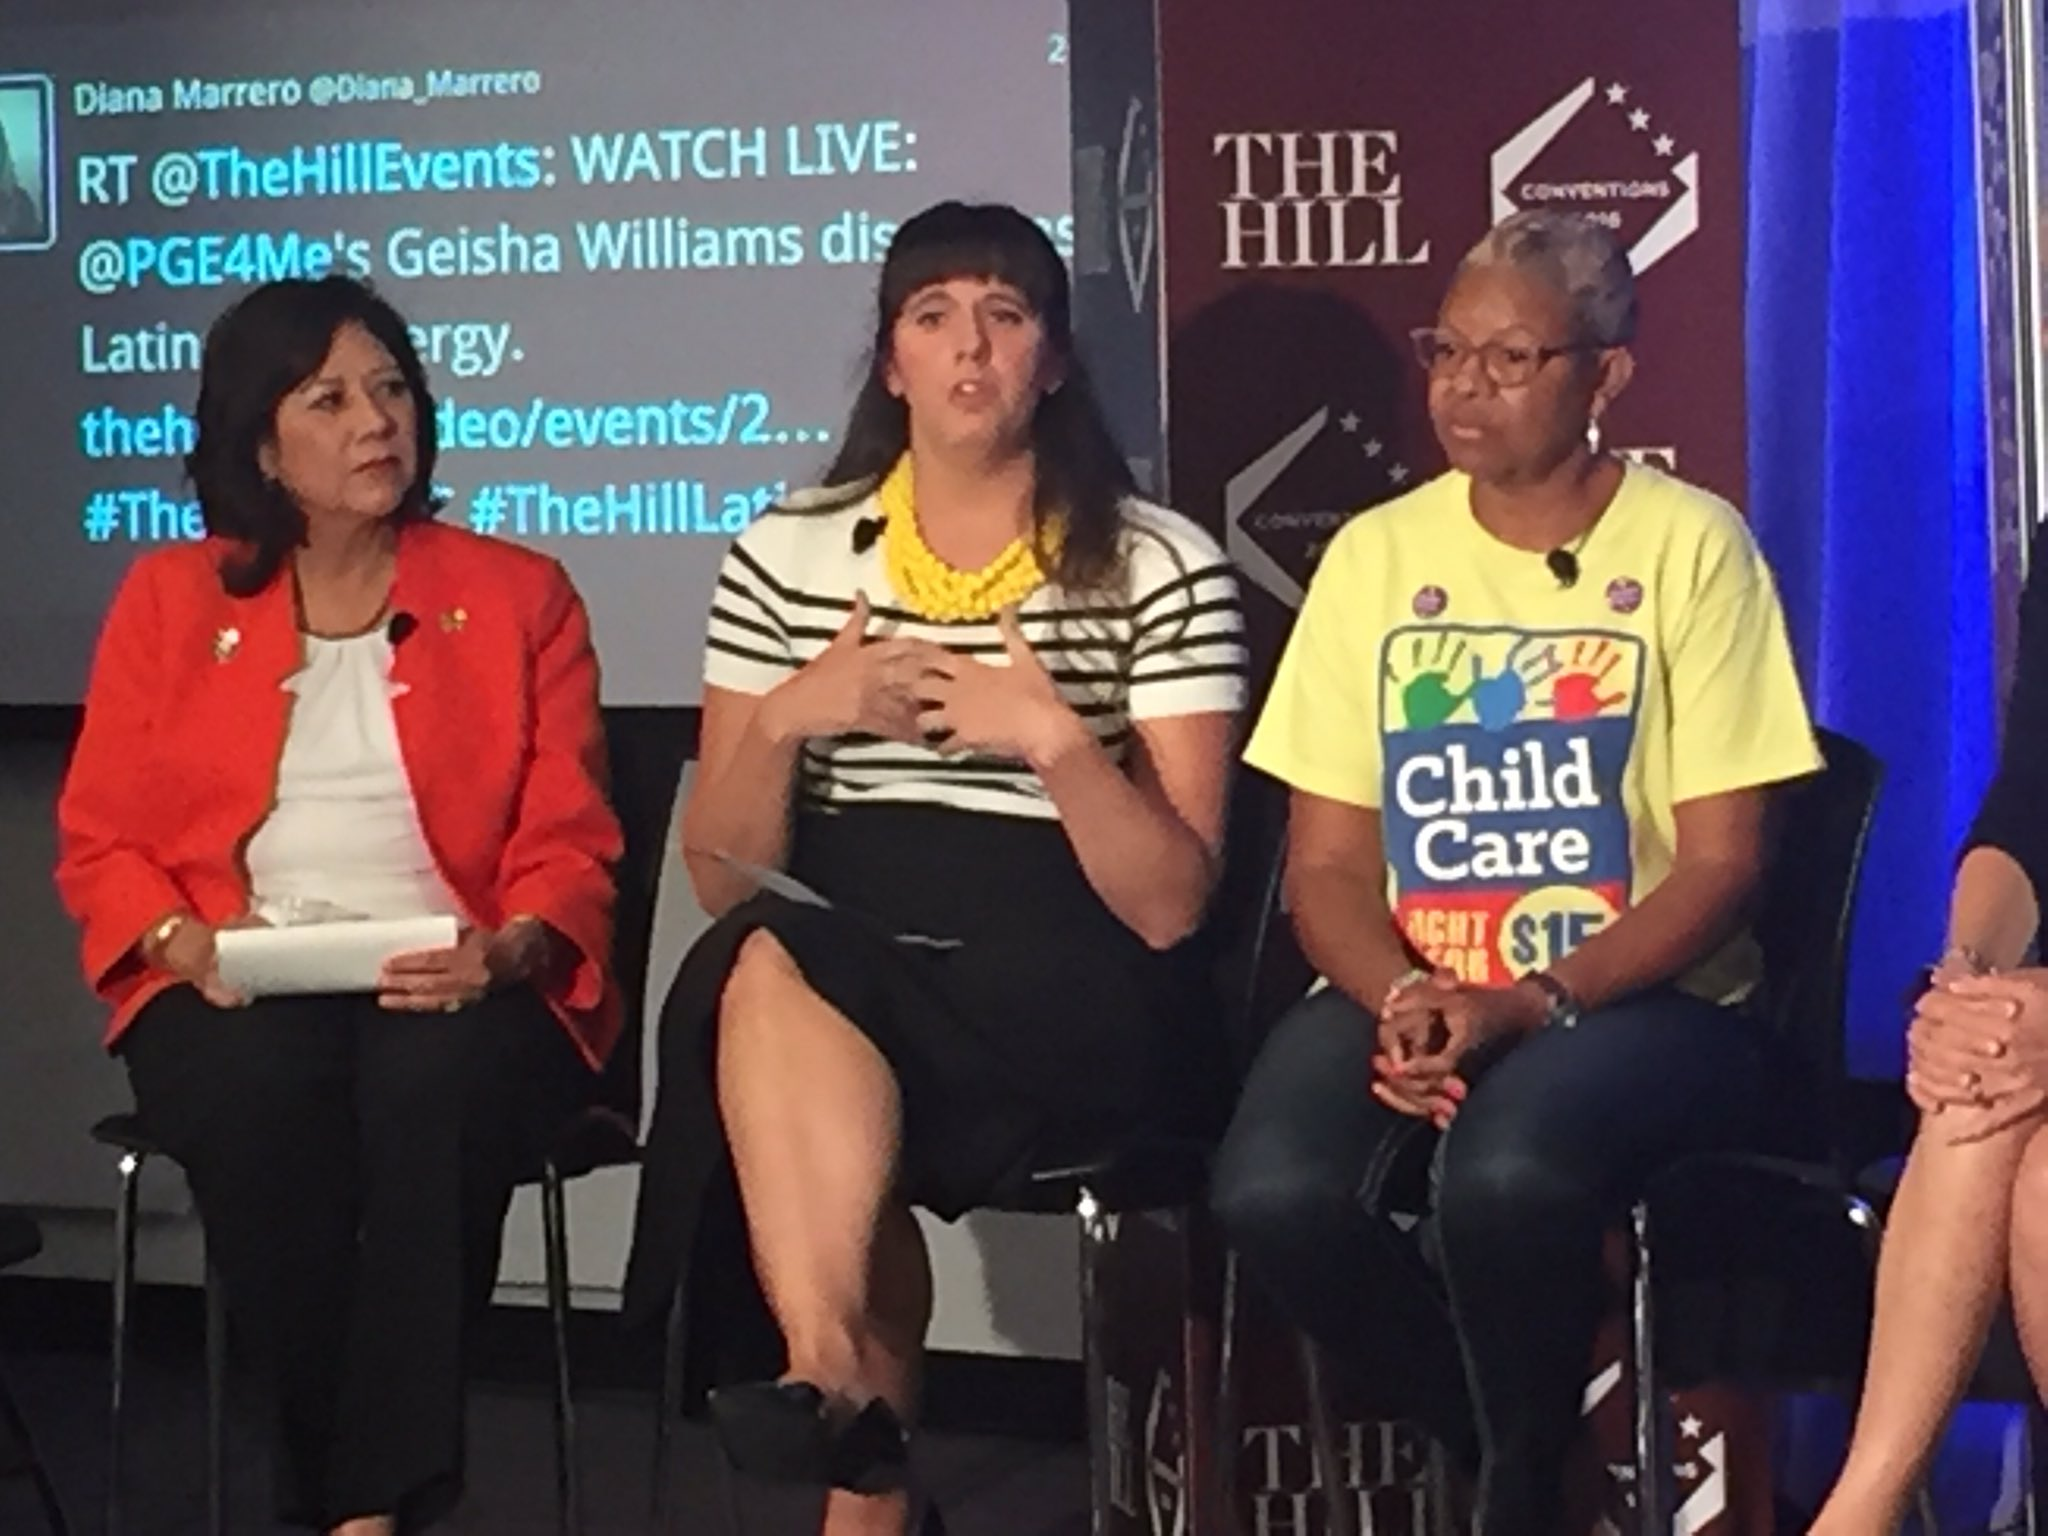 The 2nd highest concern for millennial women is balancing a career and family  #ChildcareDNC #FamilyPolicyDNC https://t.co/ScXbVa9oEK